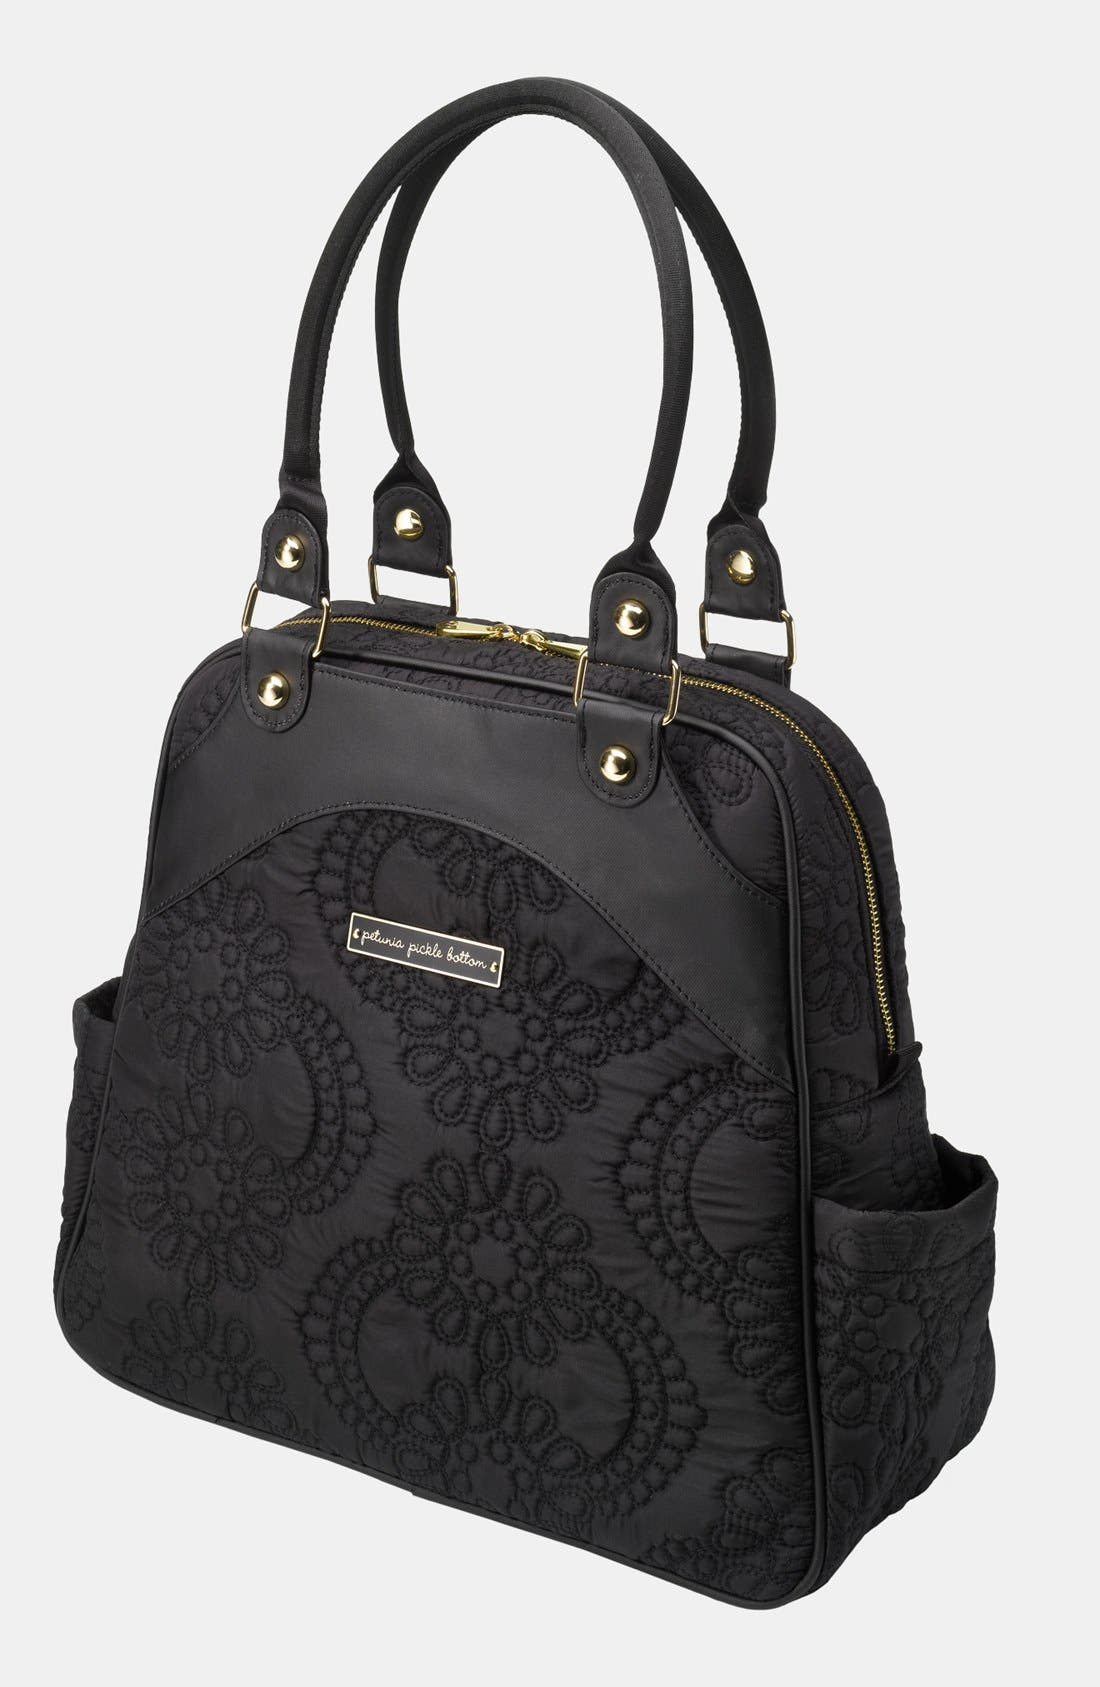 Alternate Image 1 Selected - Petunia Pickle Bottom 'Embossed Sashay' Diaper Bag (Special Edition)